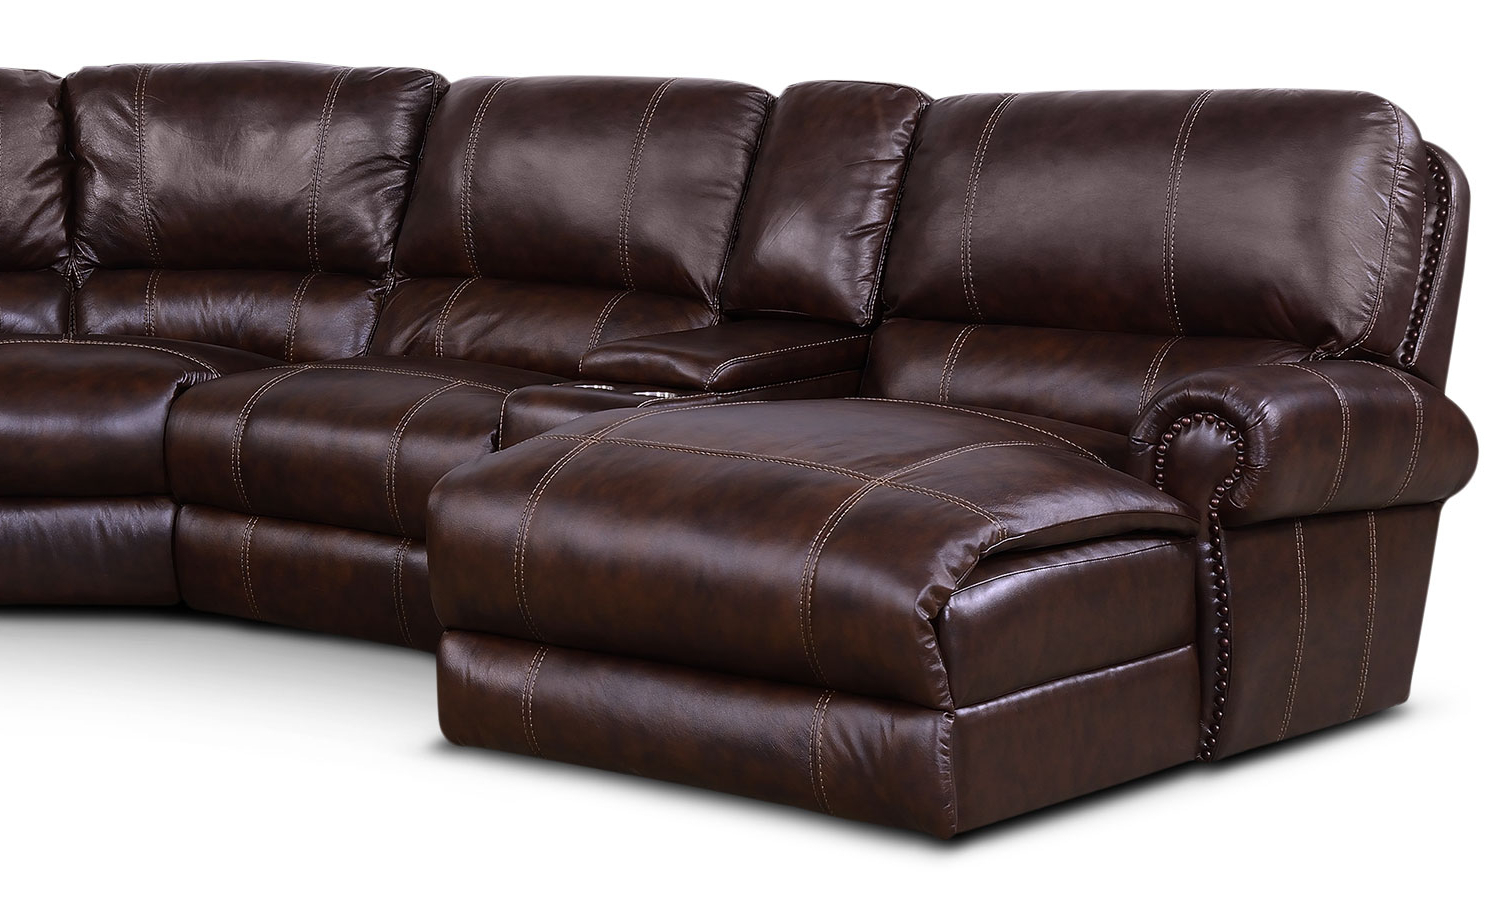 Norfolk Chocolate 6 Piece Sectionals With Raf Chaise For Widely Used Dartmouth 6 Piece Power Reclining Sectional With 2 Reclining Seats (View 2 of 20)